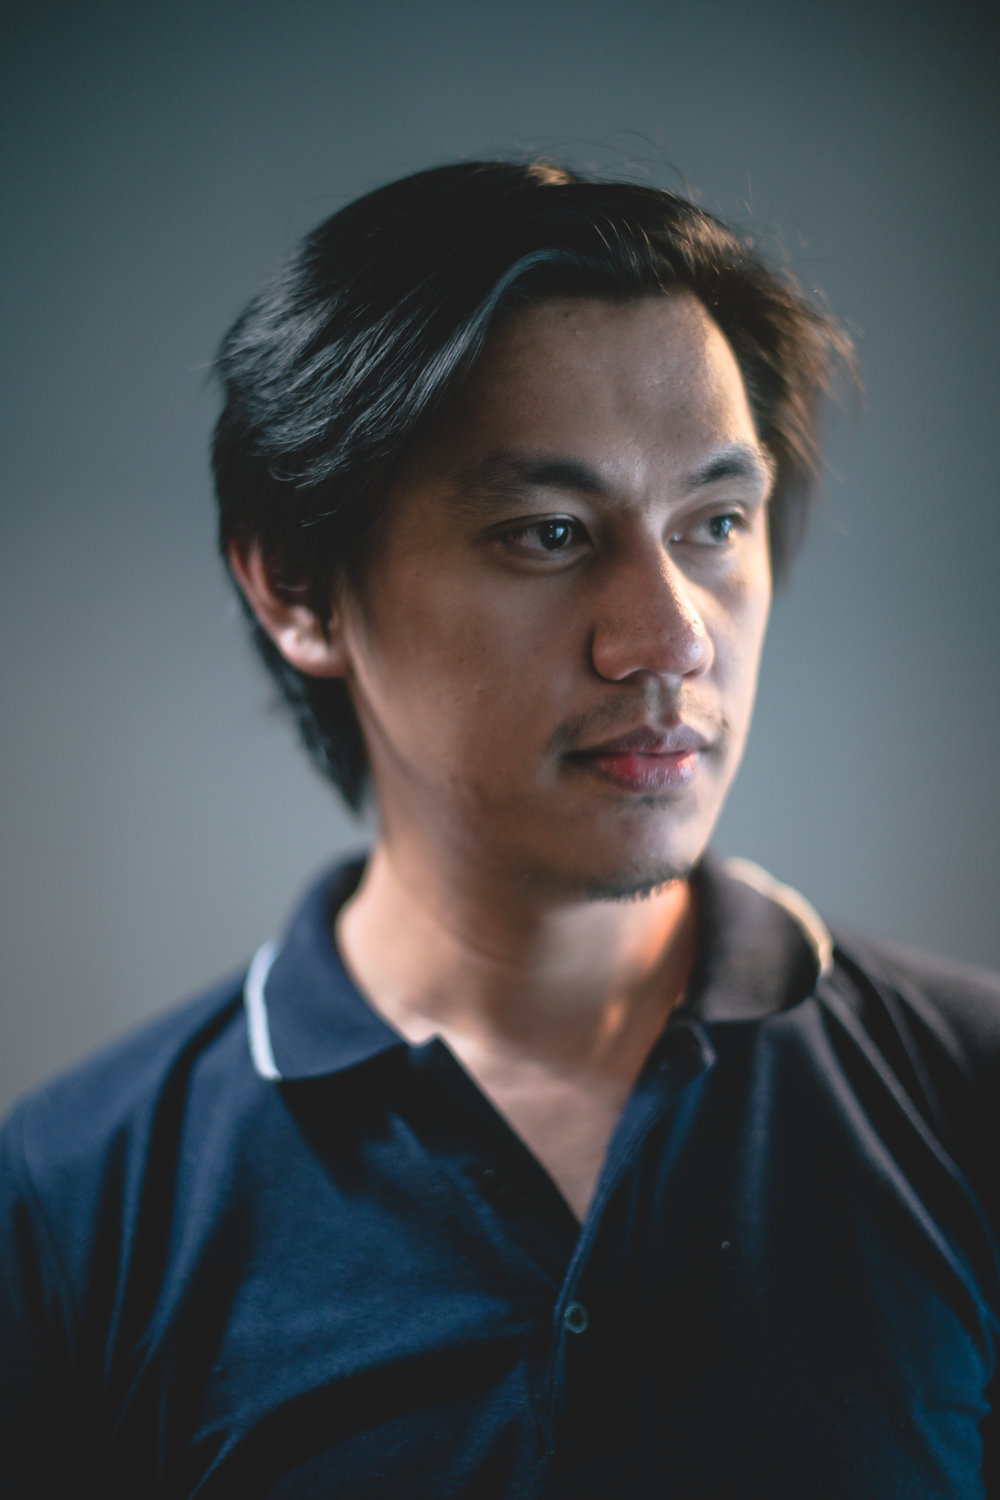 The Creative Partner - John Paul De Guzman